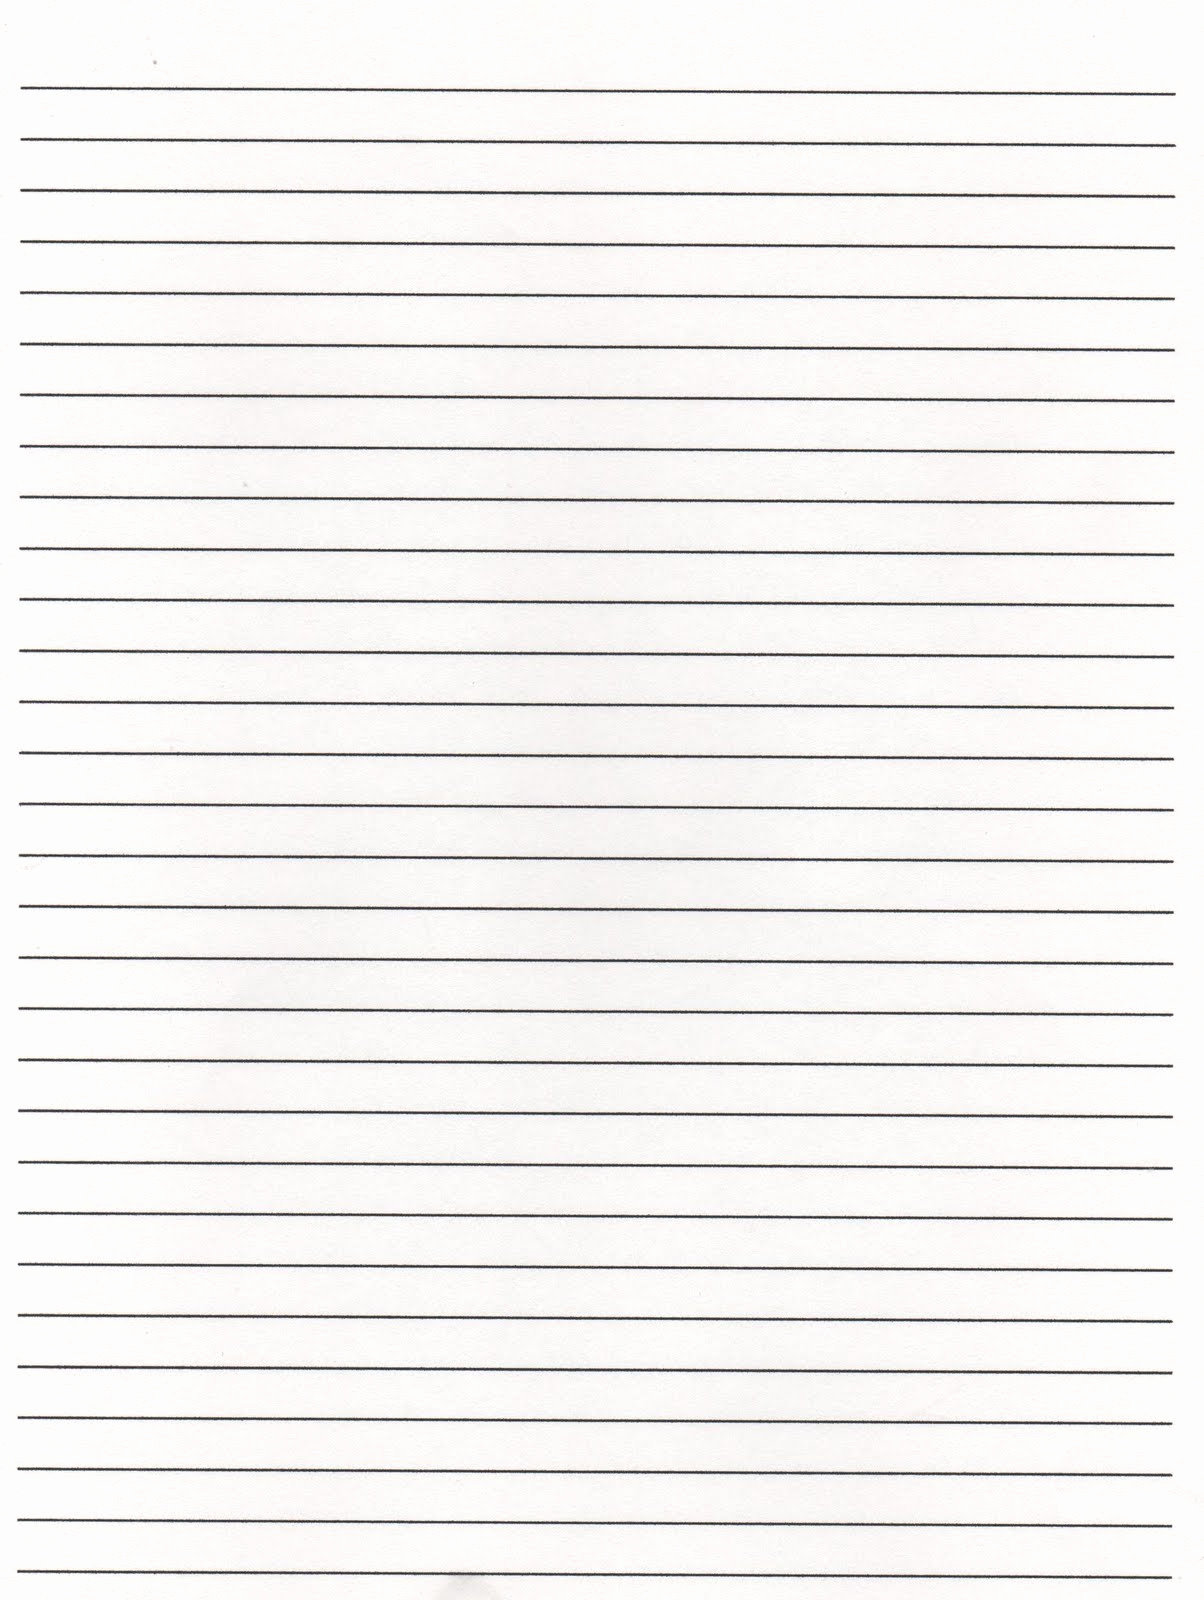 Free Printable Lined Paper Awesome Elementary School Enrichment Activities Lined Paper